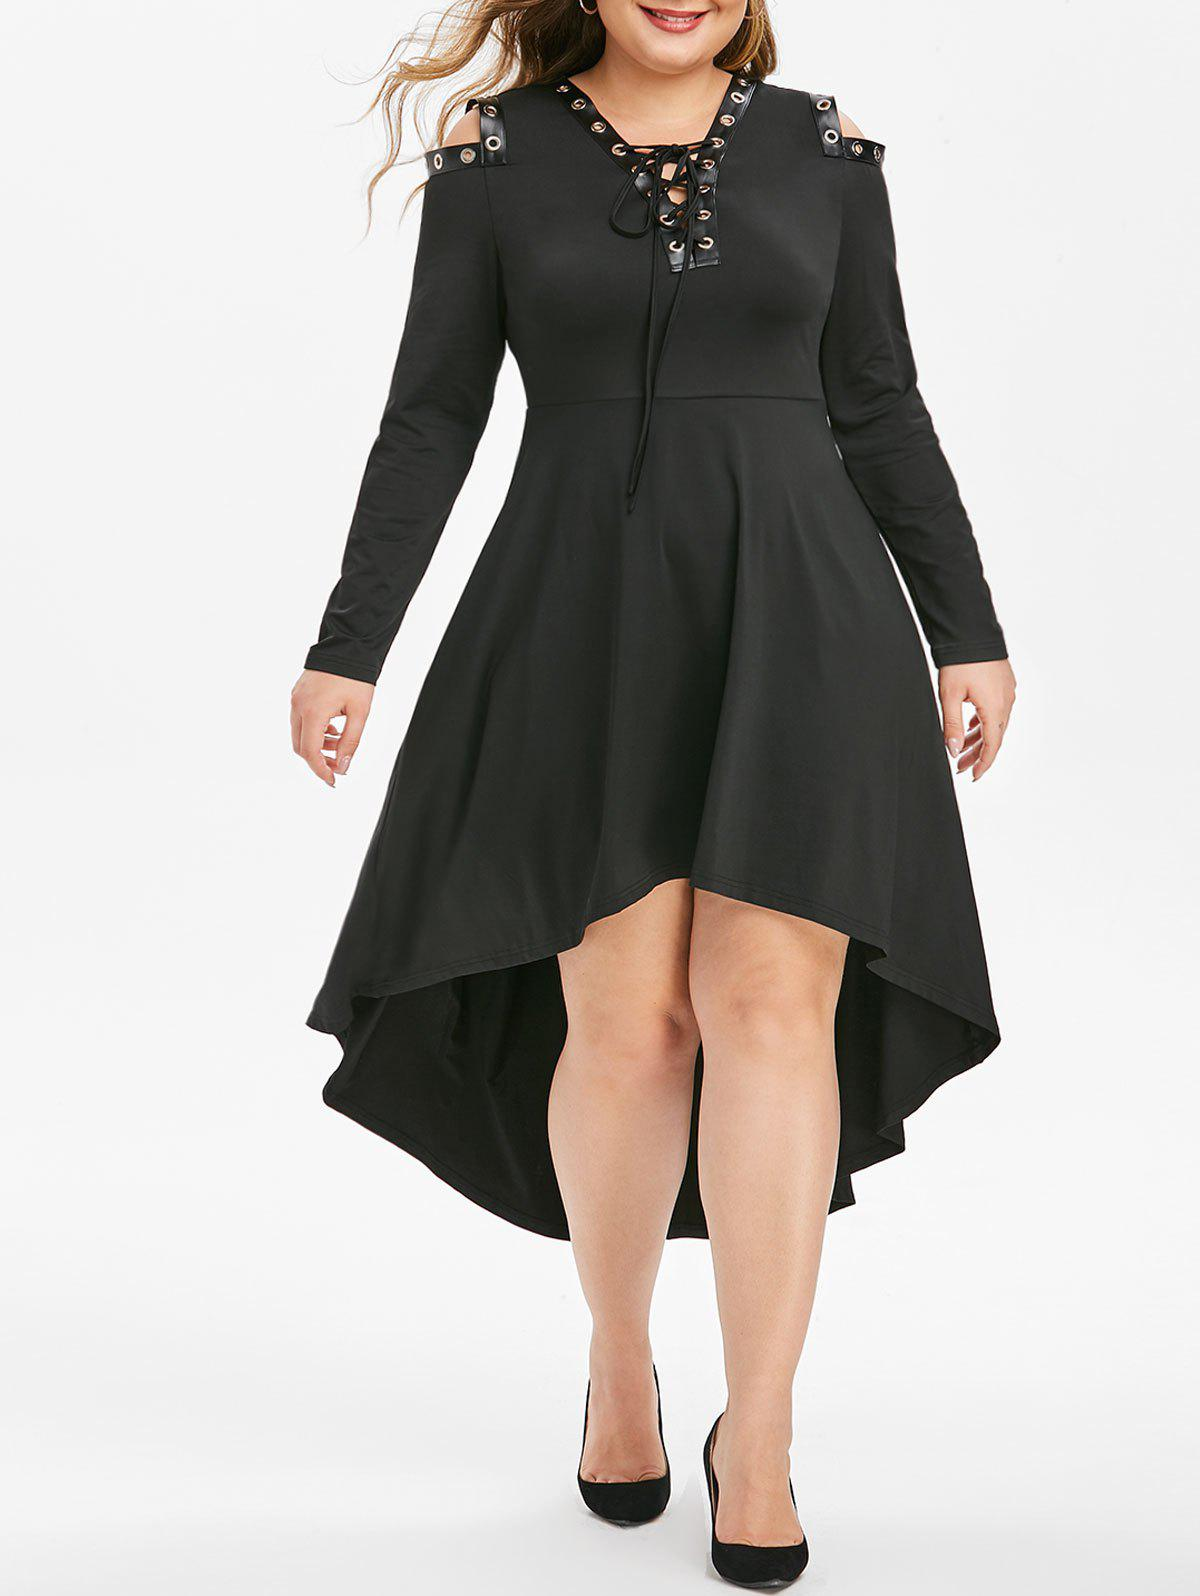 Plus Size Grommet Lace Up Dip Hem Open Shoulder Dress - BLACK 5X